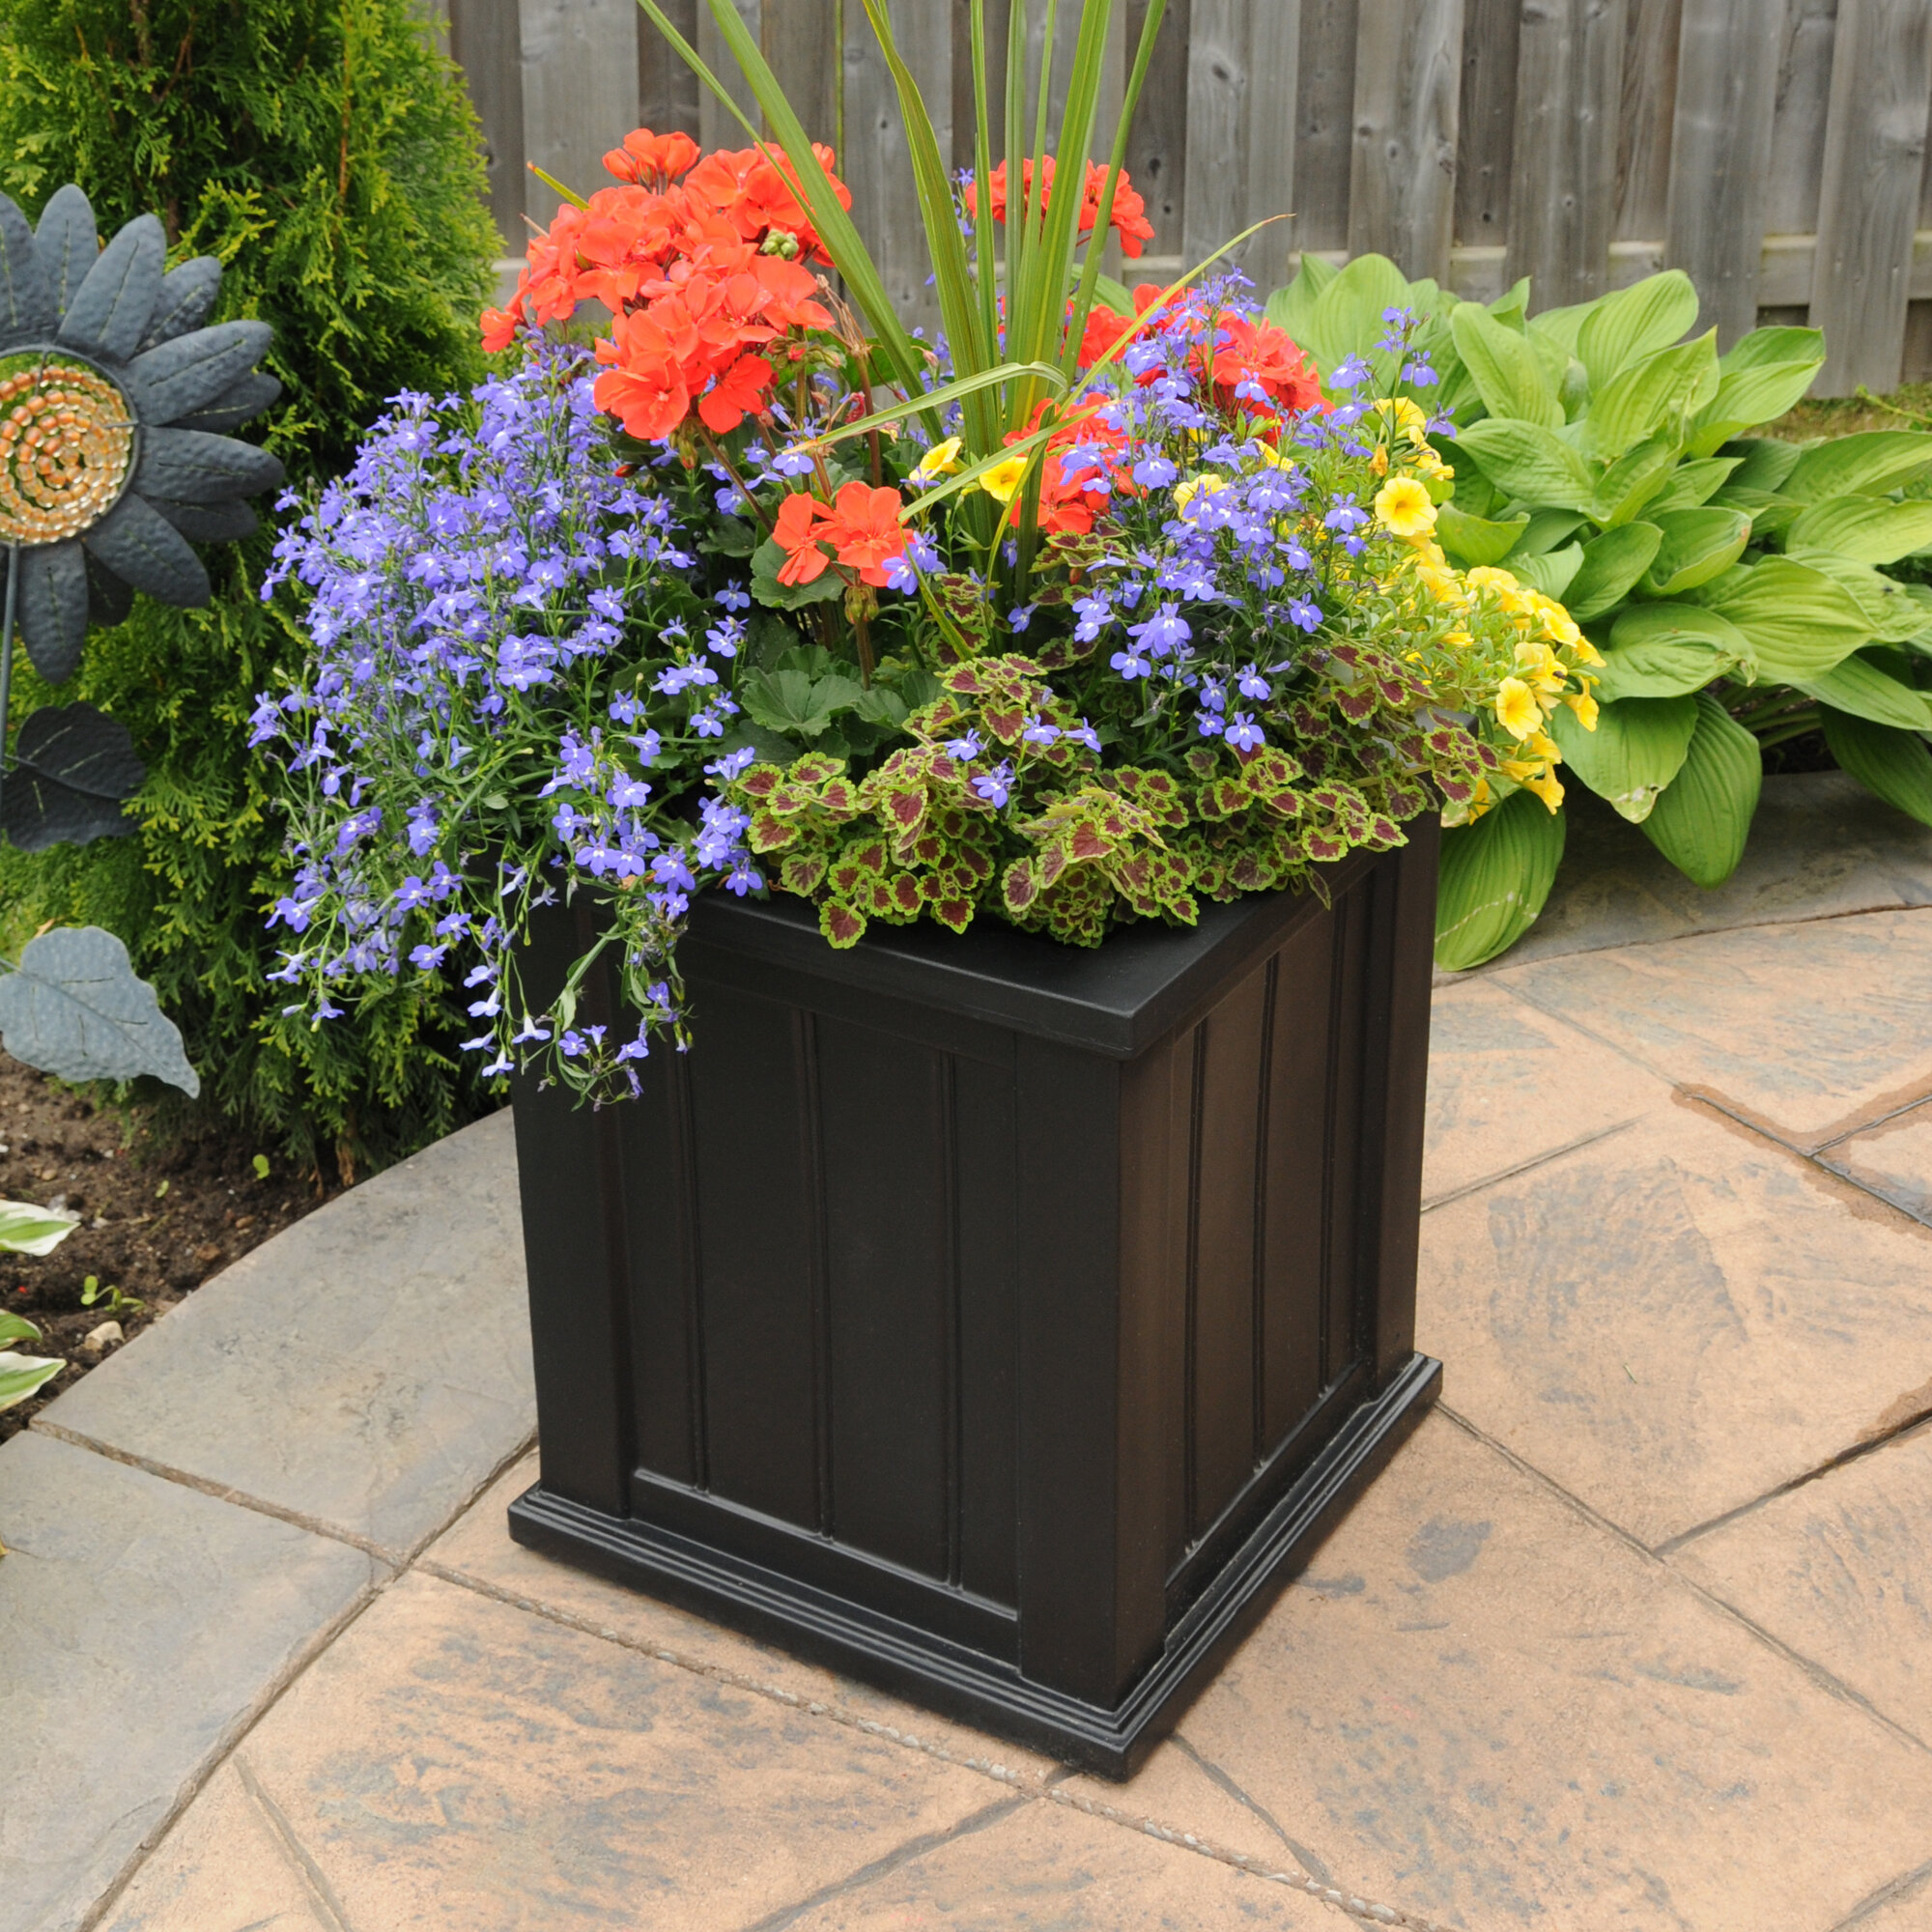 Outdoor planters youll love cape cod self watering plastic planter box workwithnaturefo